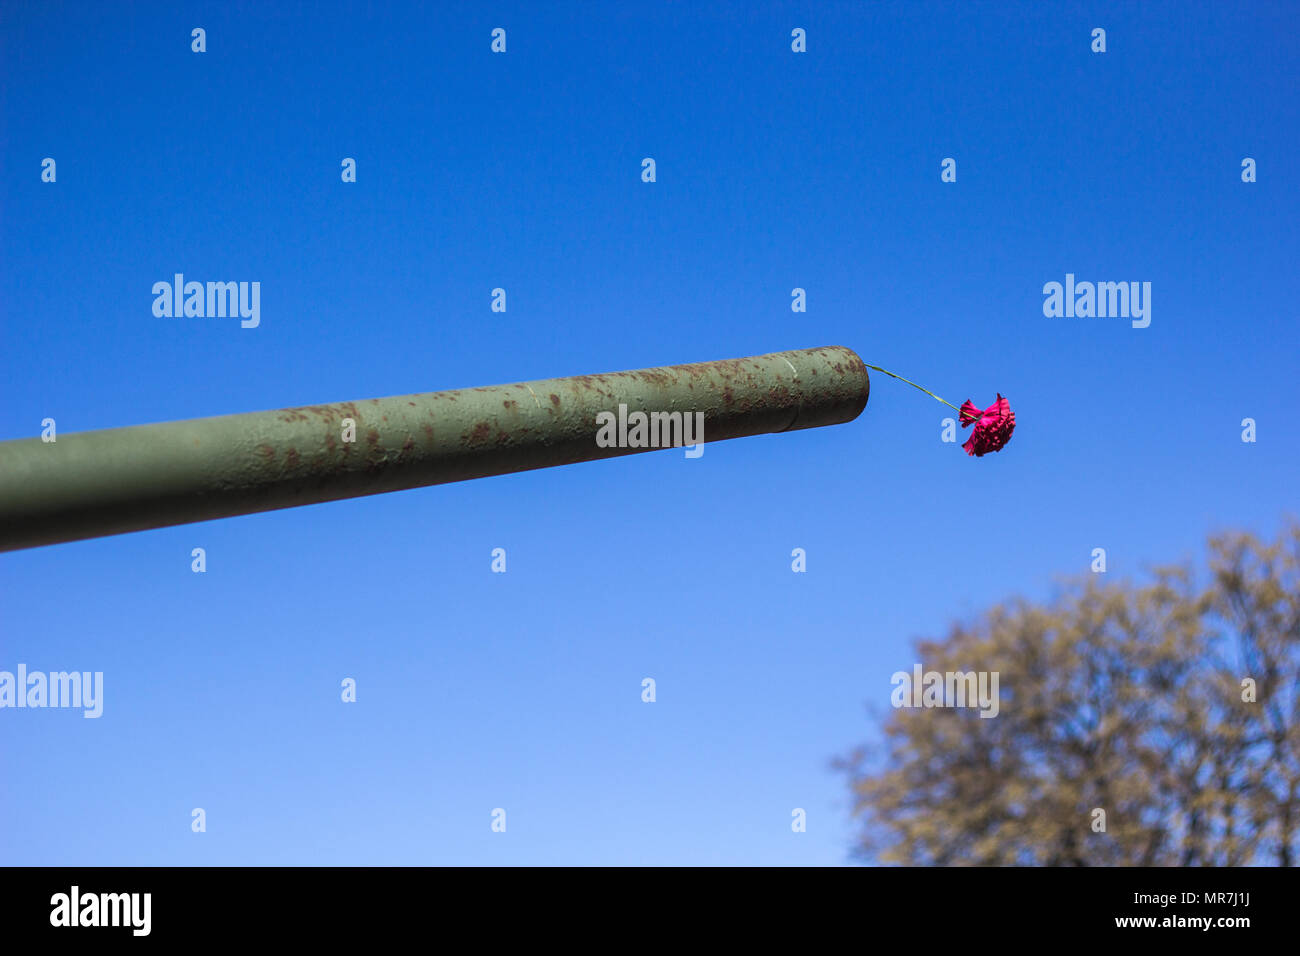 Carnation flower in the muzzle of the tank against the blue sky, concept of peace and memory Stock Photo